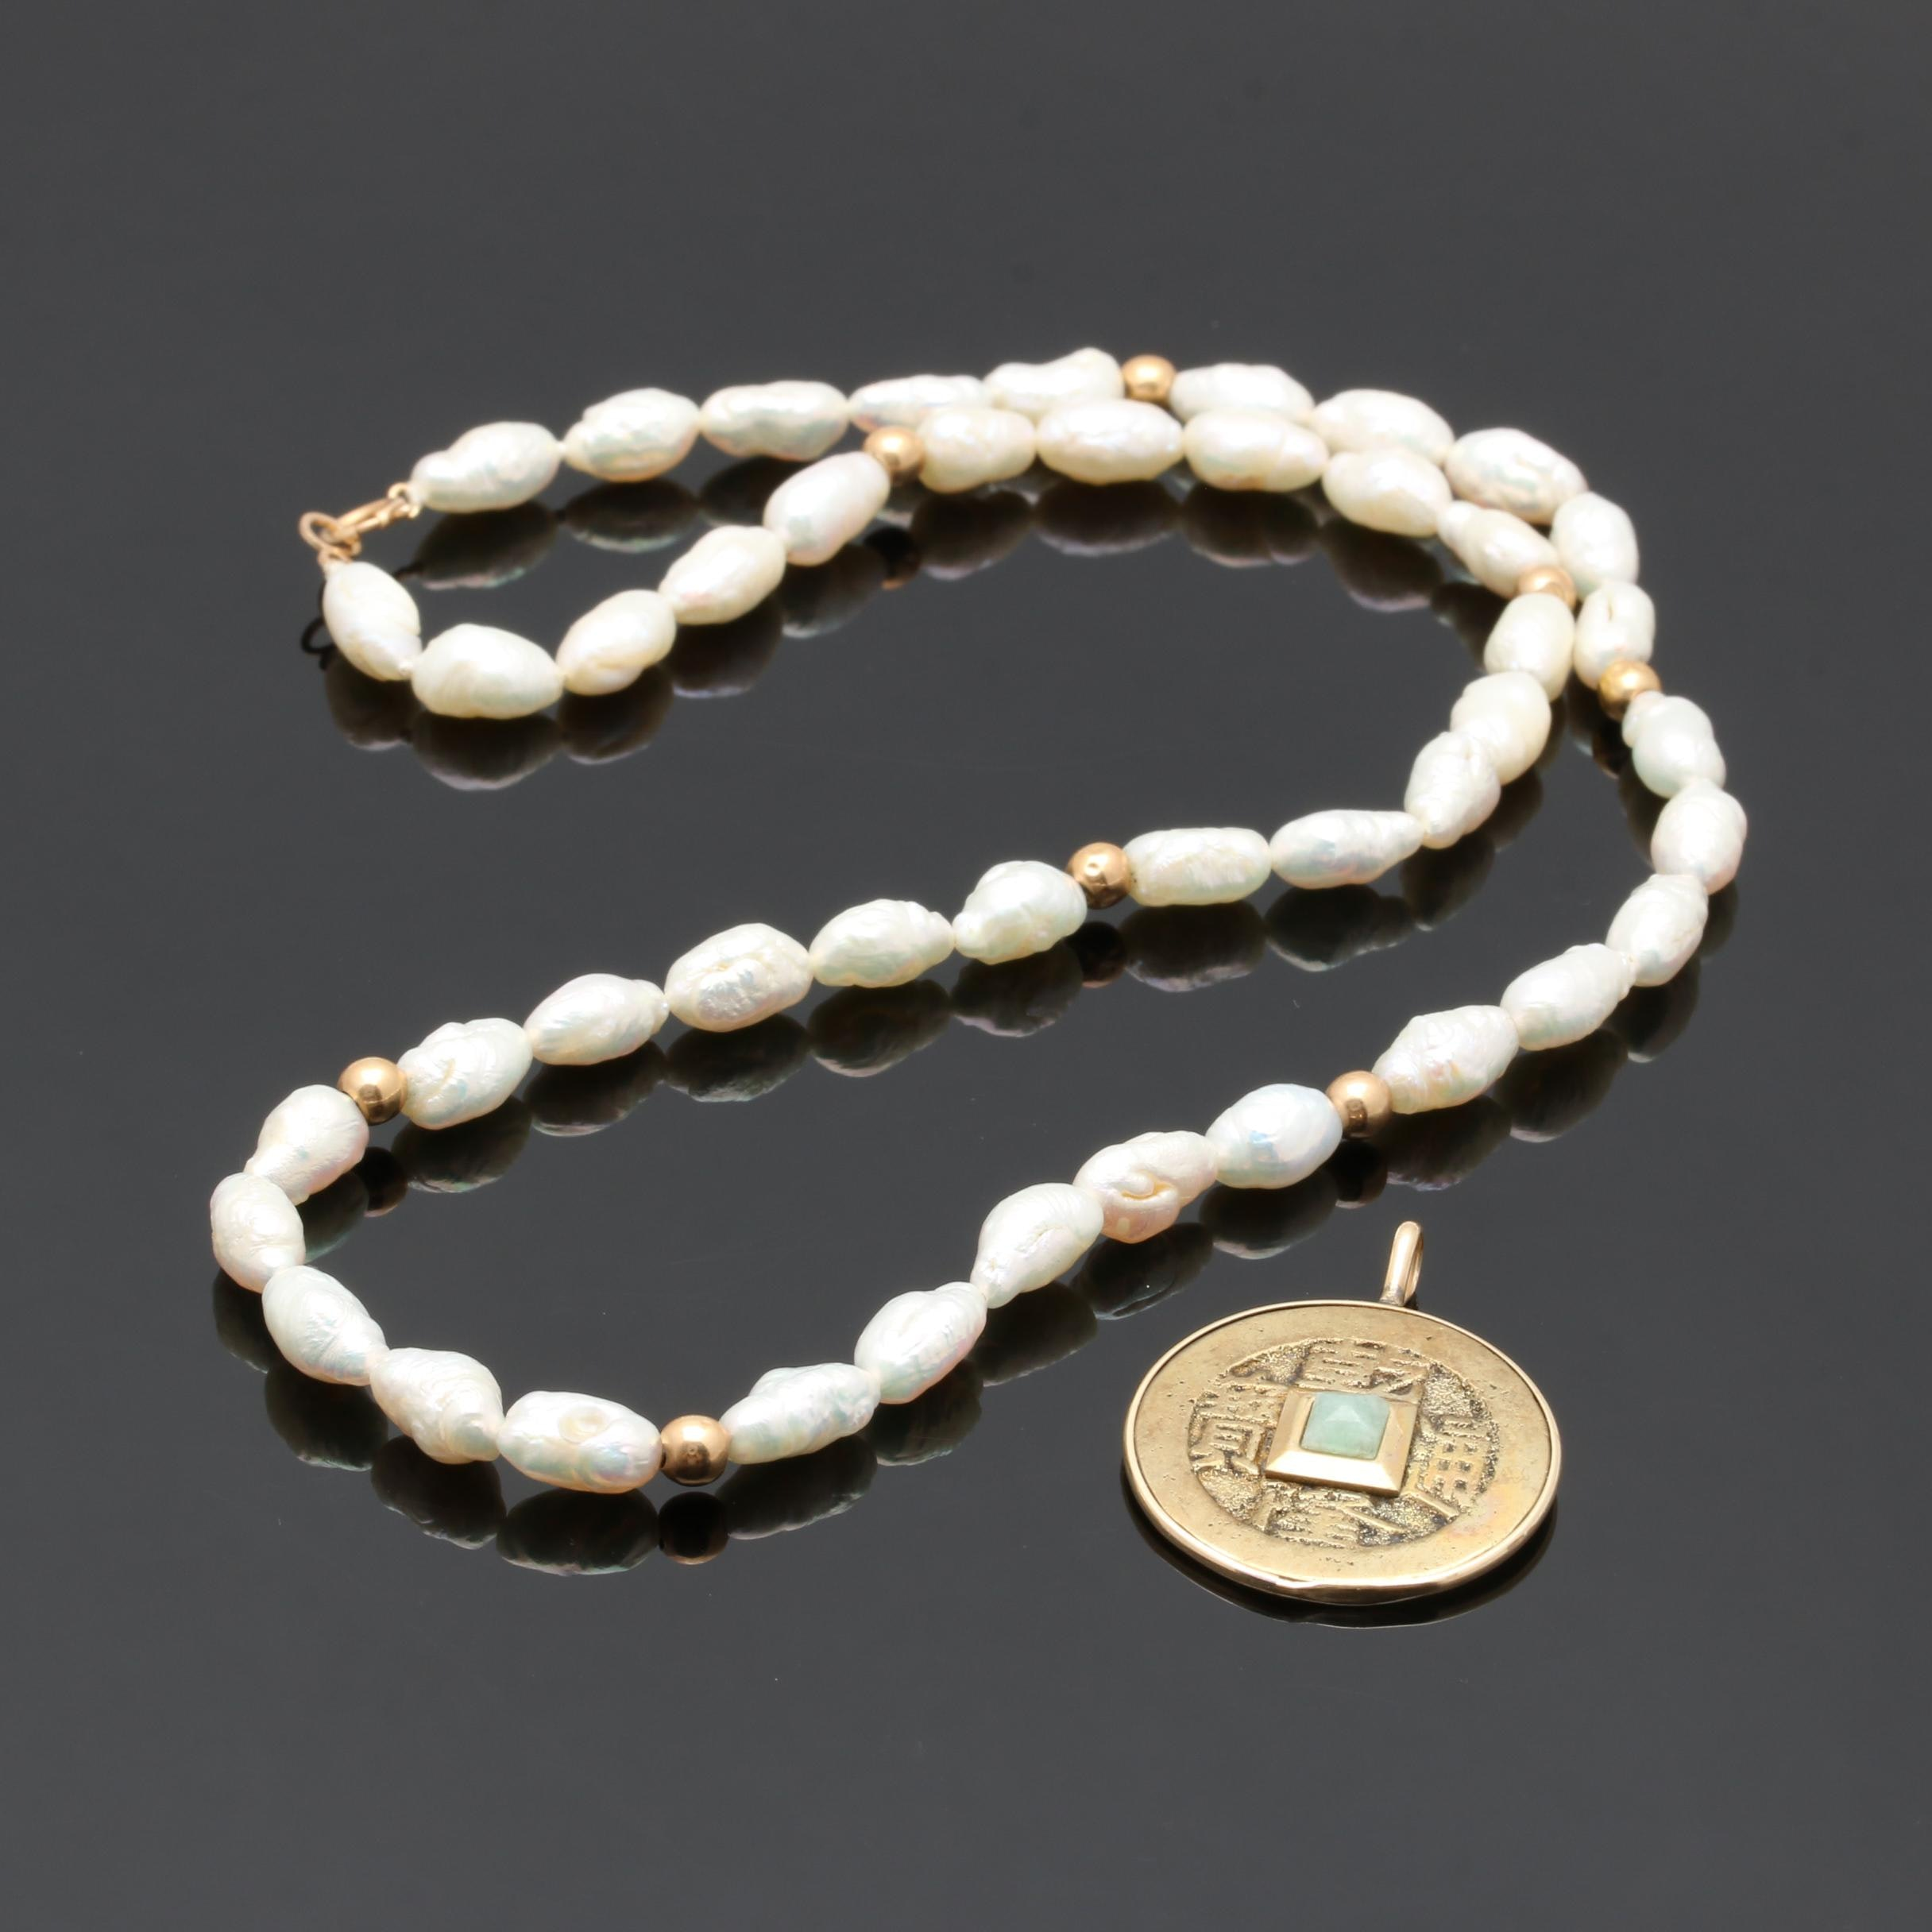 14K Yellow Gold Cultured Pearl Necklace and Gold Tone Jadeite Pendant